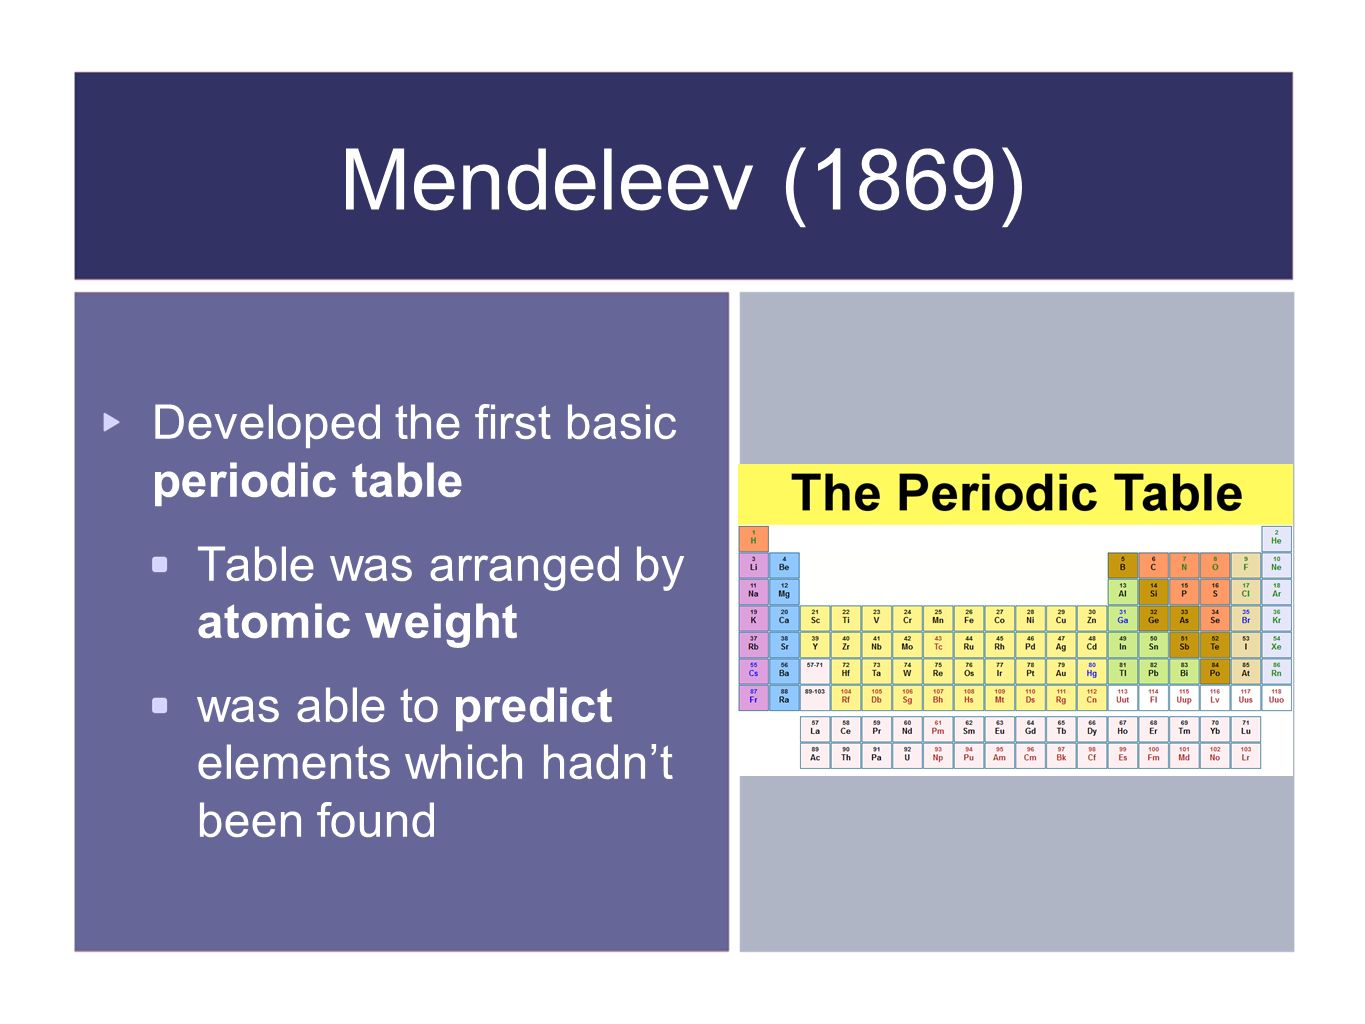 History of atomic theory ppt video online download mendeleev 1869 developed the first basic periodic table gamestrikefo Choice Image